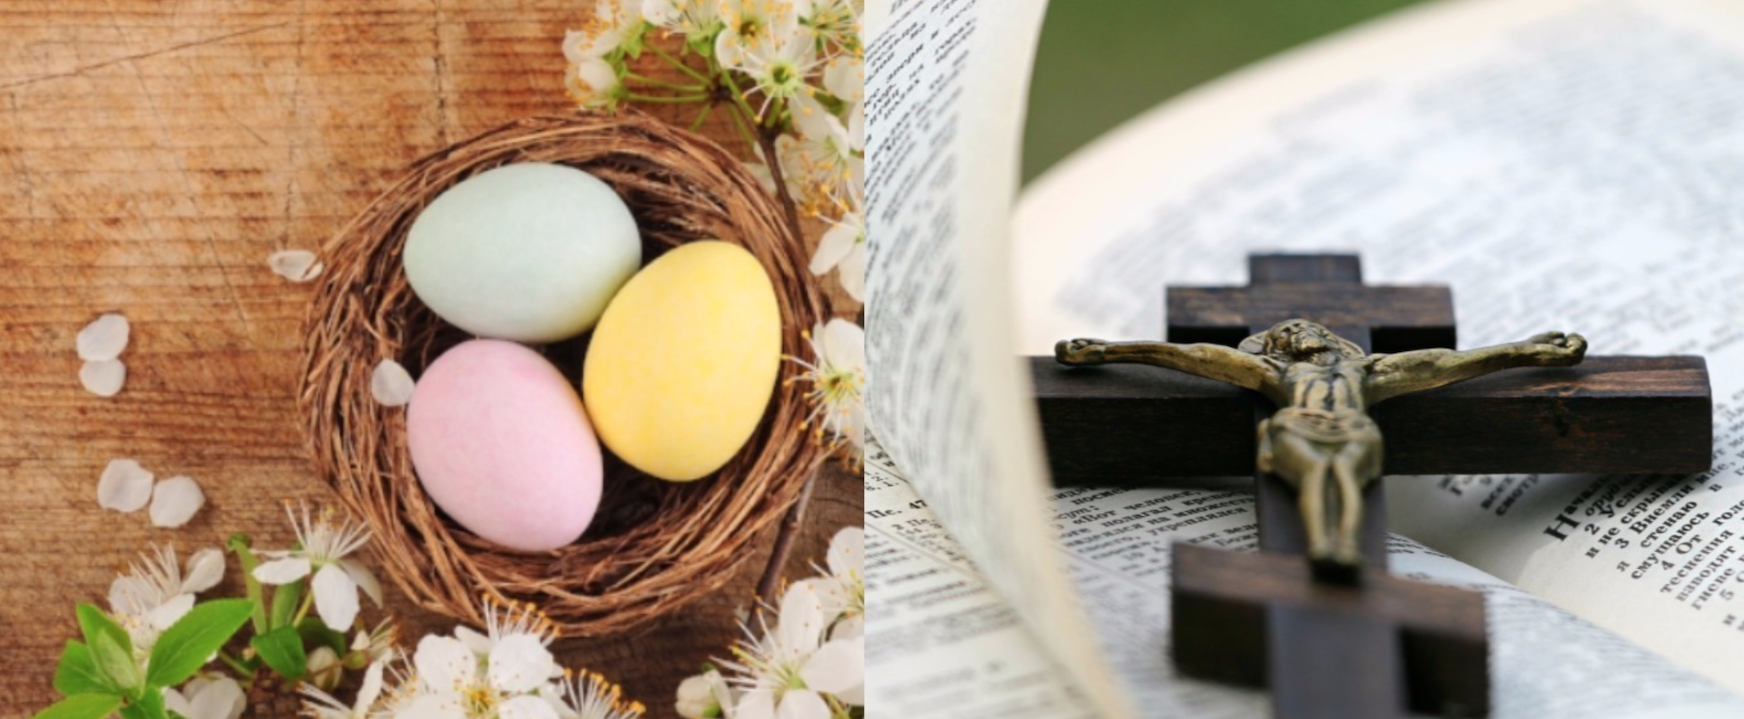 50 Happy Easter Wishes 2021 Easter Quotes Messages